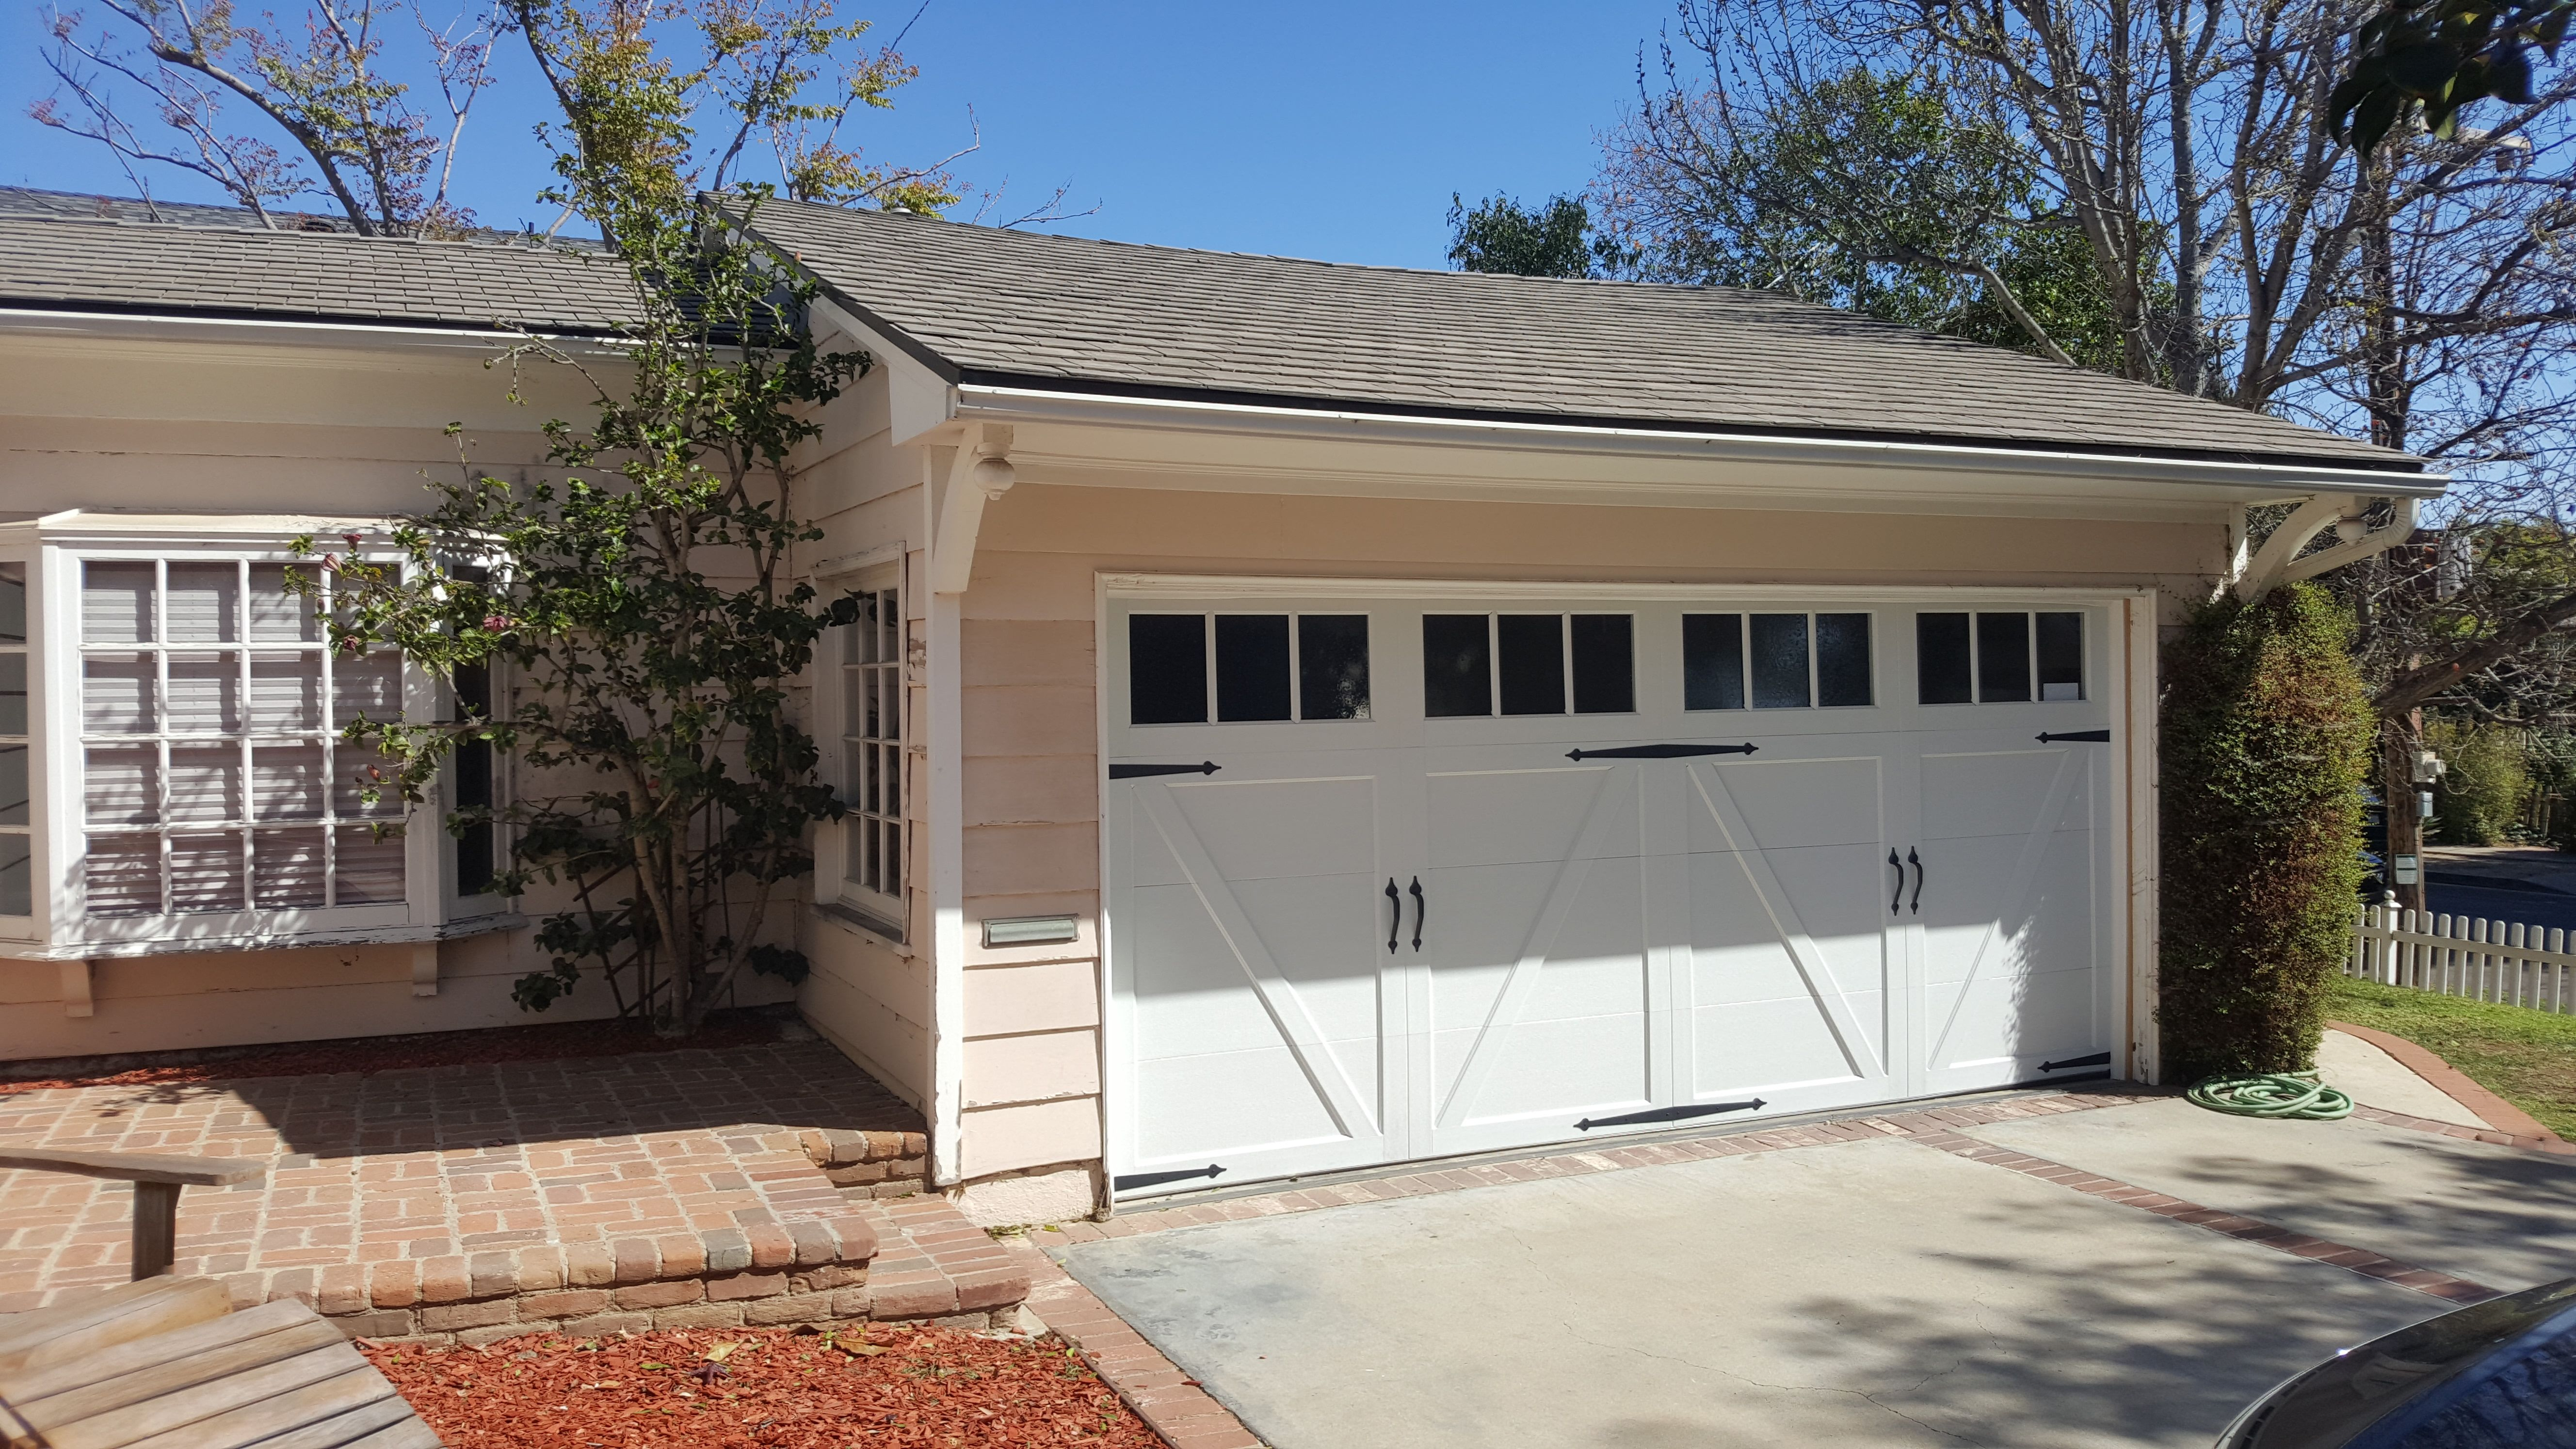 Carriage House Steel Garage Doors Installed In Sherman Oaks Ca Garage Doors Door Installation Steel Garage Doors